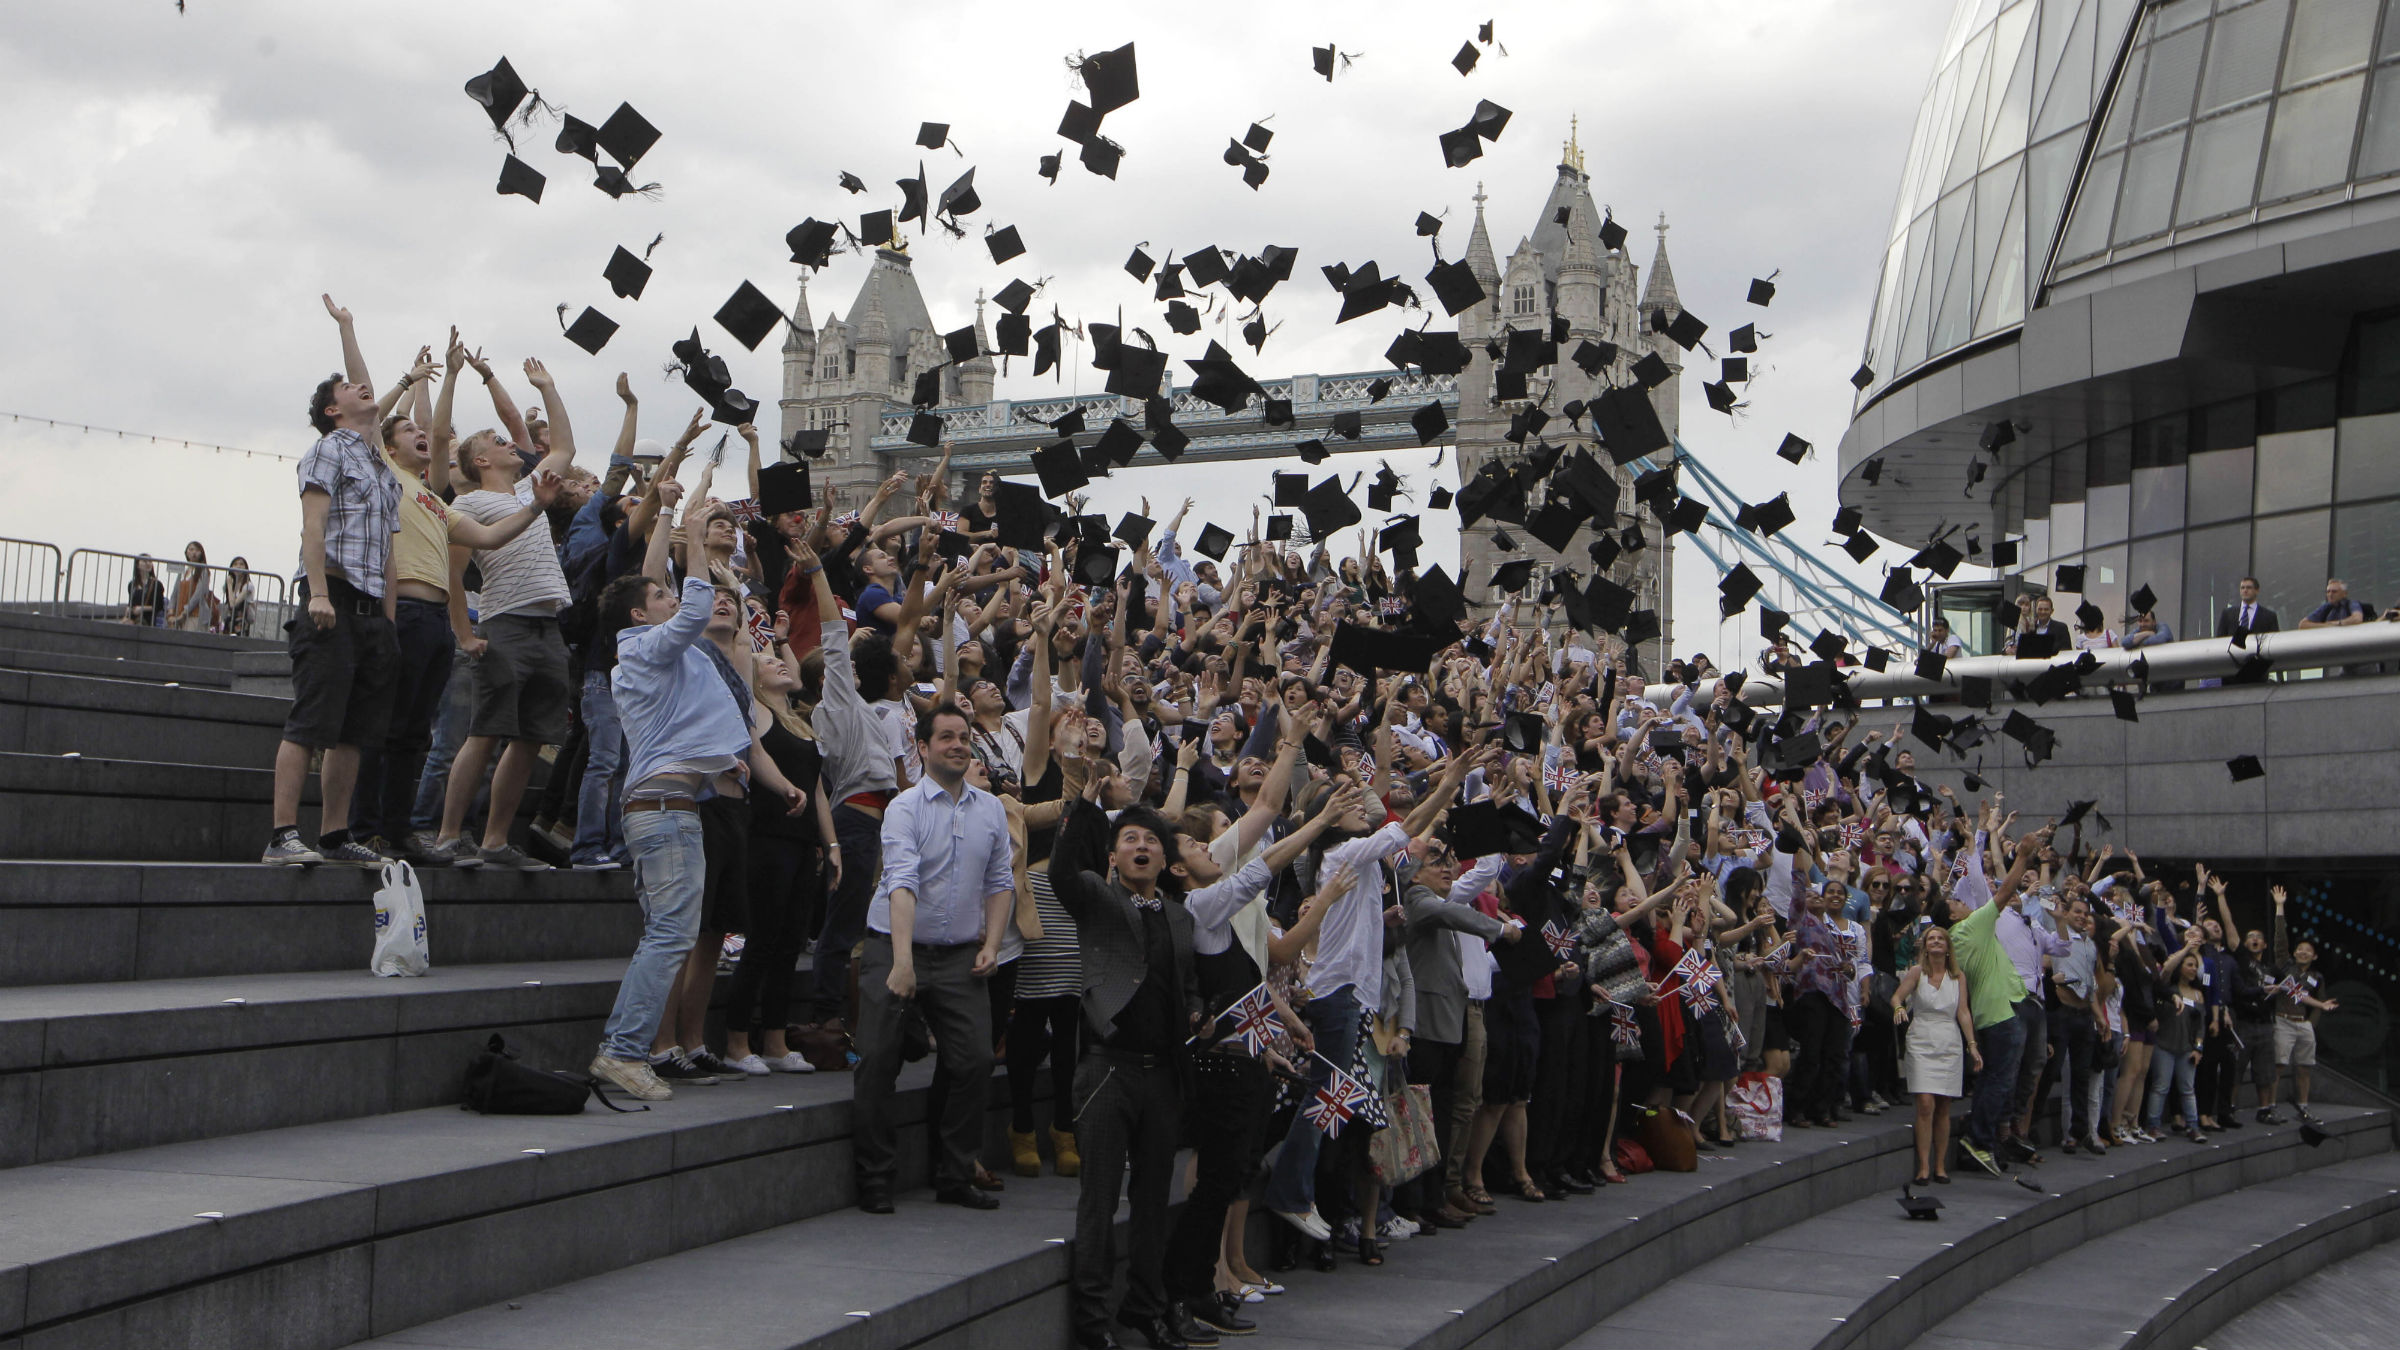 Backdropped by Tower Bridge, hundreds of students from more than 100 nationalities toss their mortar boards into the air in a Guinness World Record attempt for the most people throwing mortar boards simultaneously outside City Hall, right, in London as part of World Record London to mark the news that more international students than ever are now studying in London, Wednesday, May 30, 2012. 295 students took part and set a new Guinness World Record.